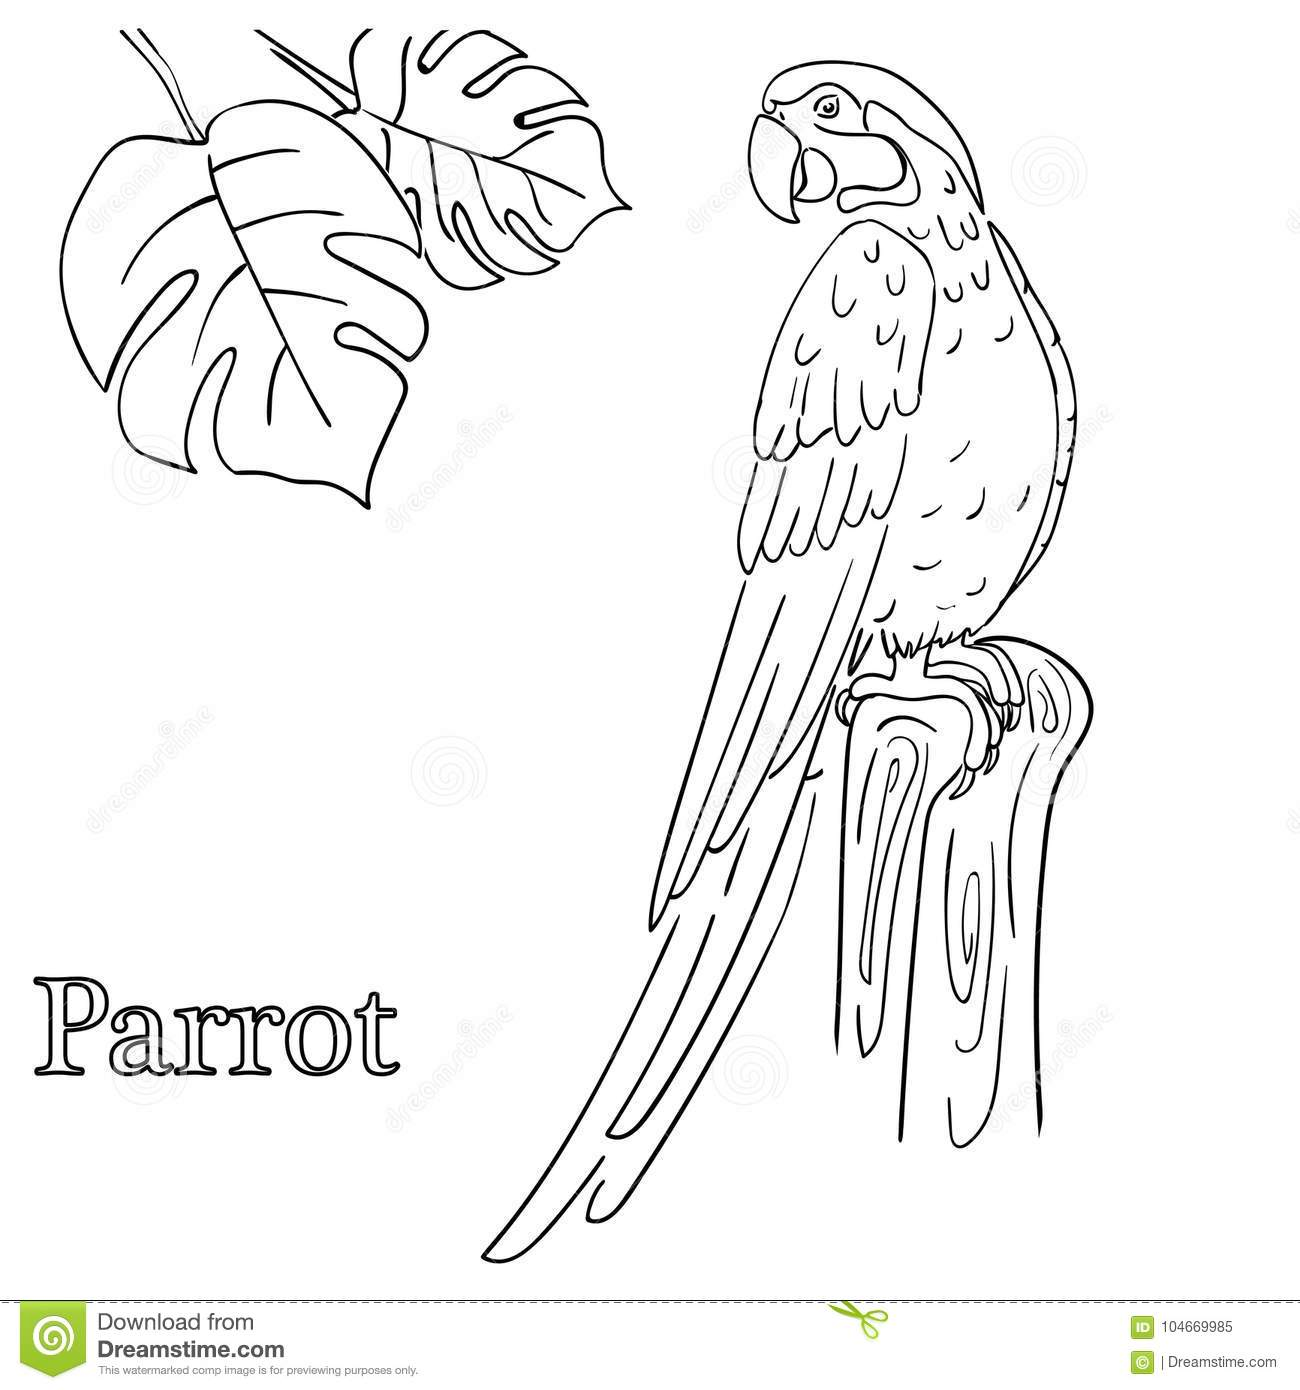 Parrot Coloring Pages For Children EPS 10 Stock Vector ...